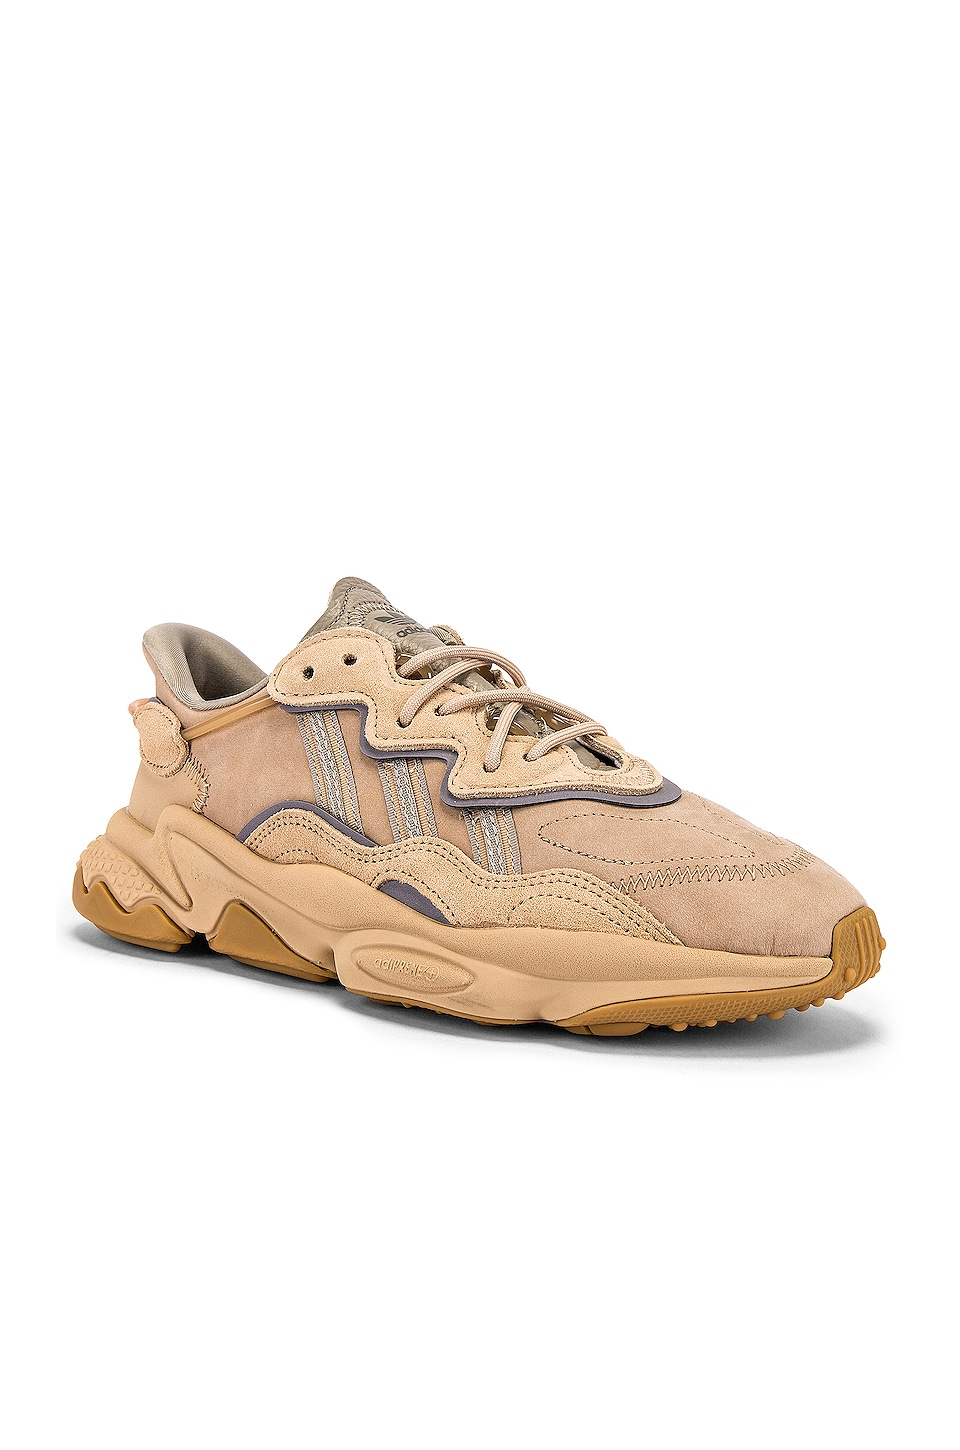 adidas Originals Ozweego in St Pale Nude & Light Brown & Solar Red